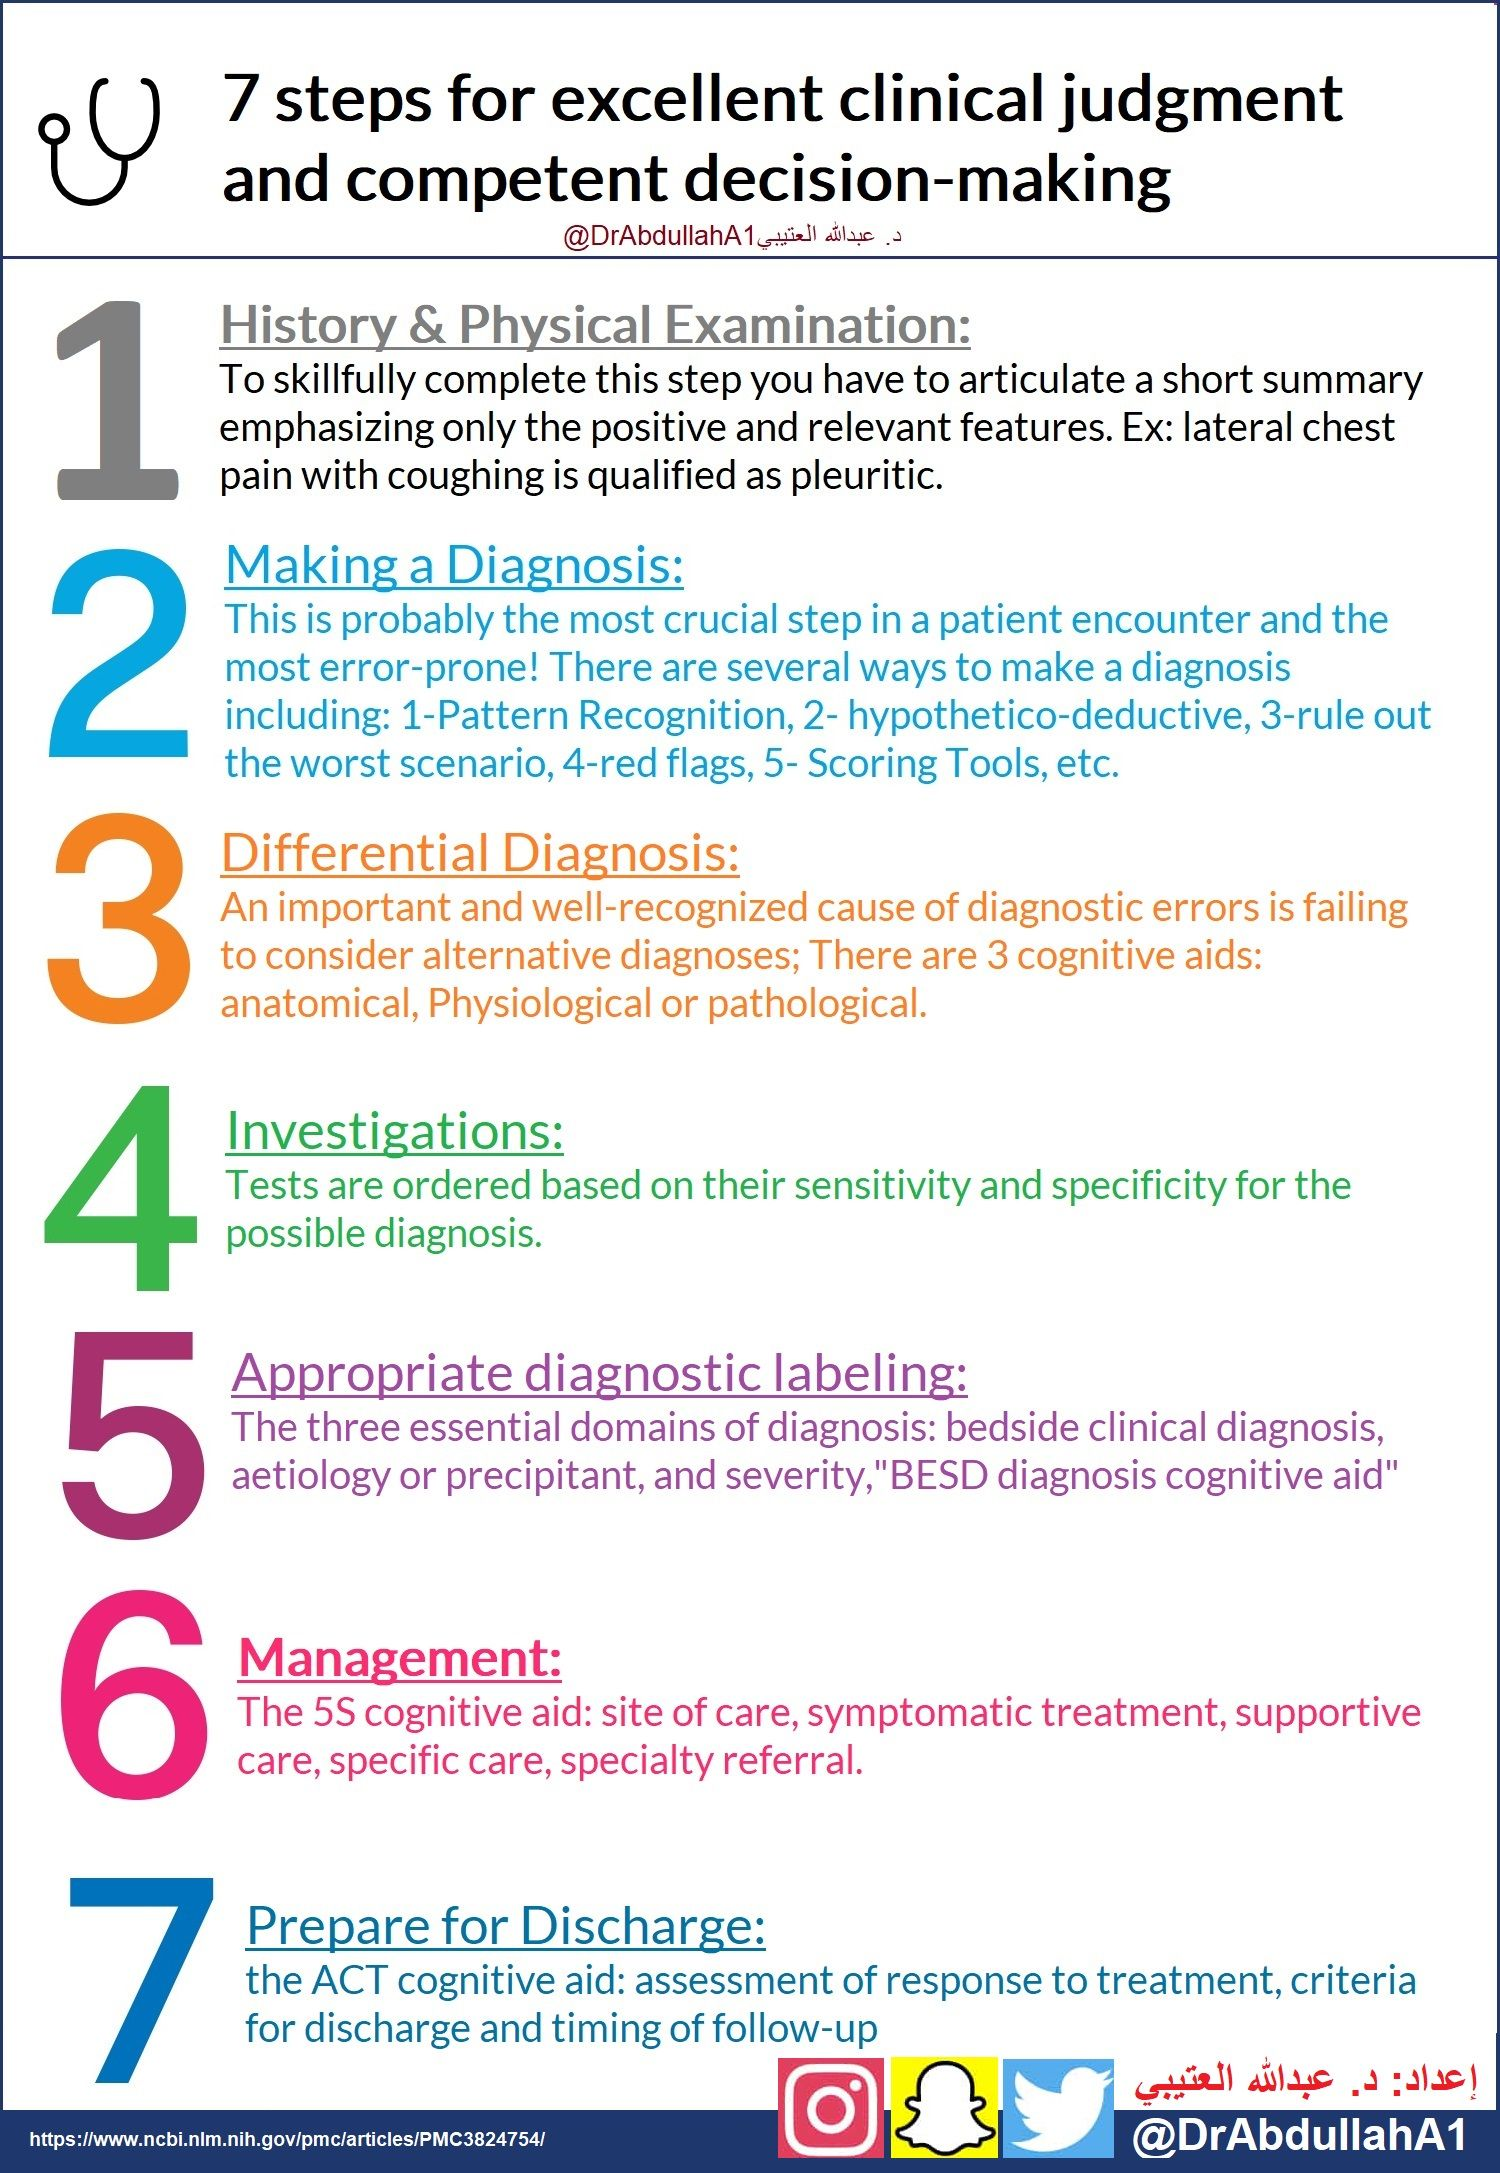 7 Steps For Excellent Clinical Judgment And Competent